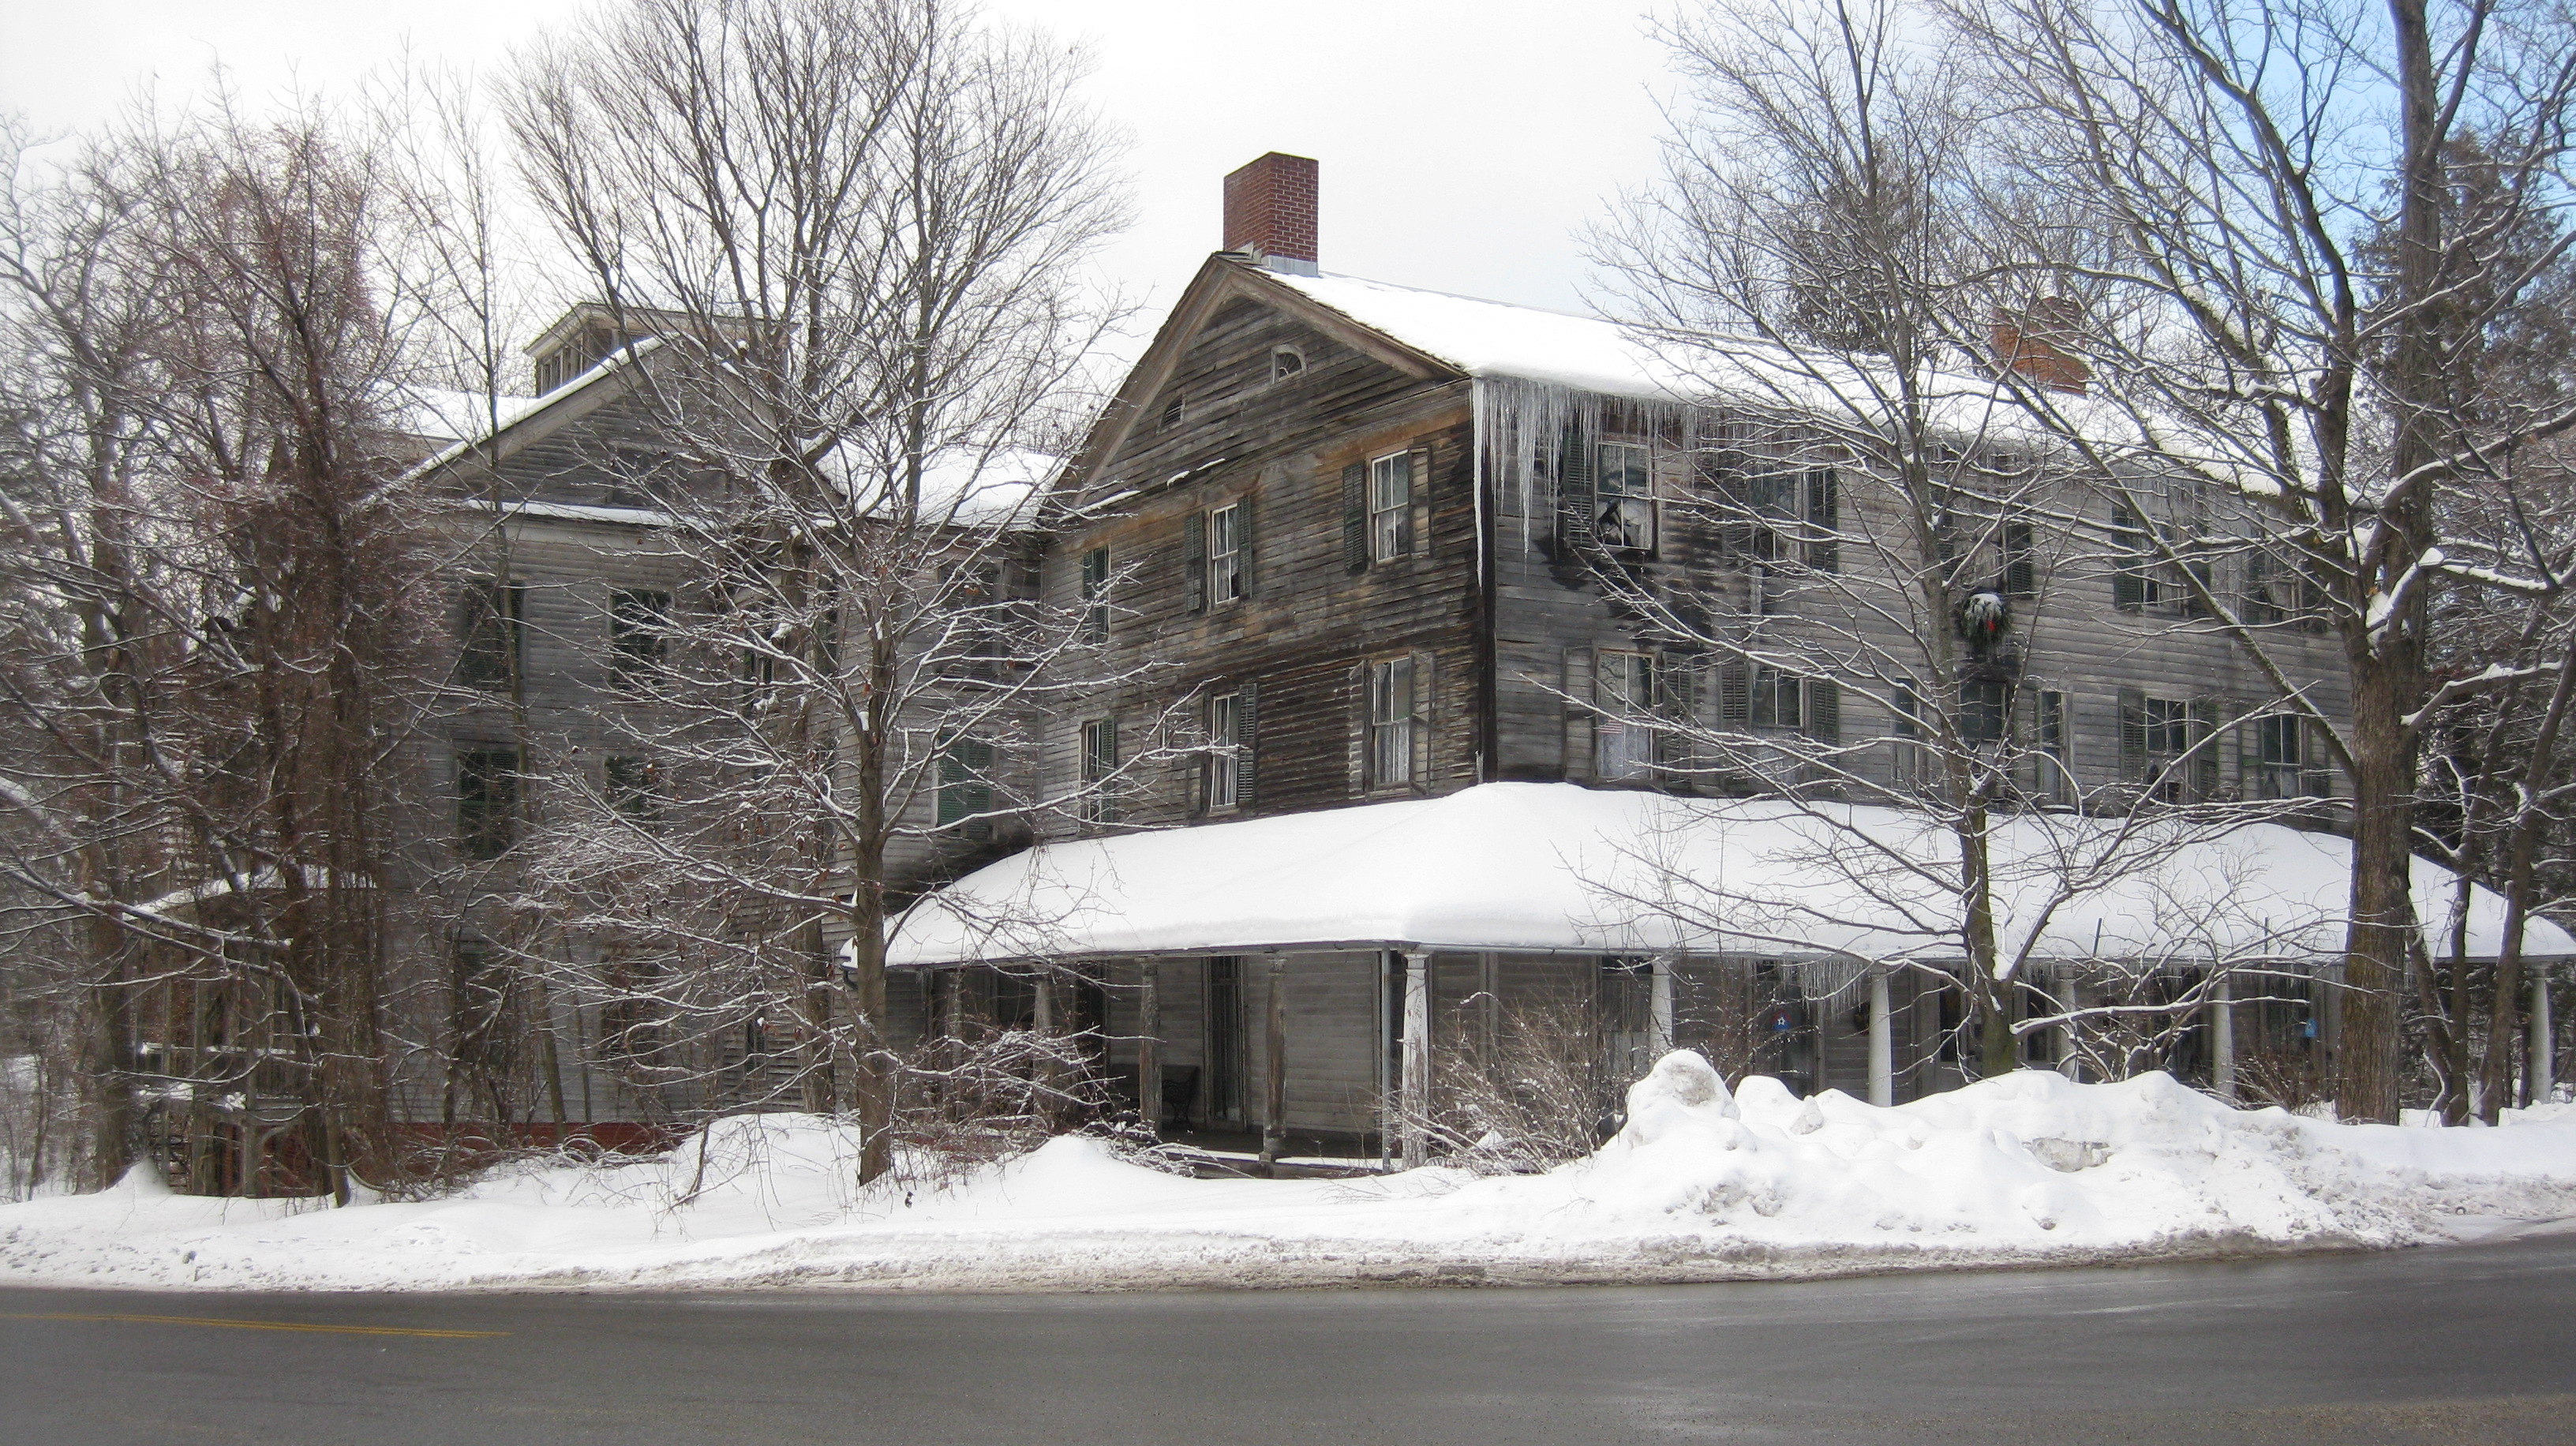 bed breakfast and traveler vermont new inn maine stays fairfield for stories england cond salem nast captain halloween in scary kennebunkport